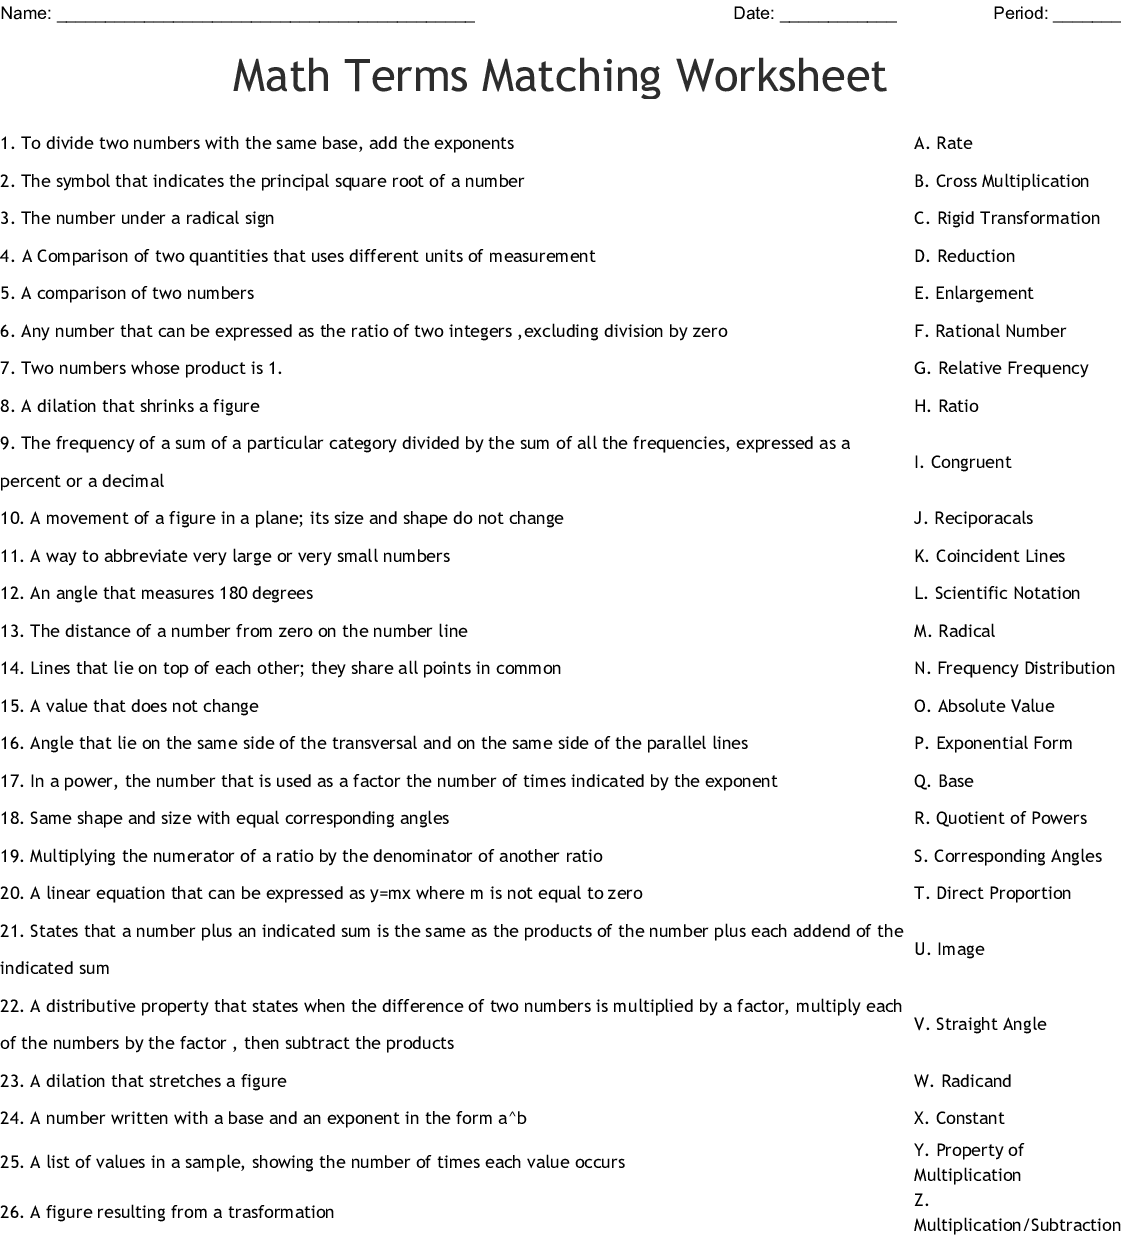 Math Terms Matching Worksheet